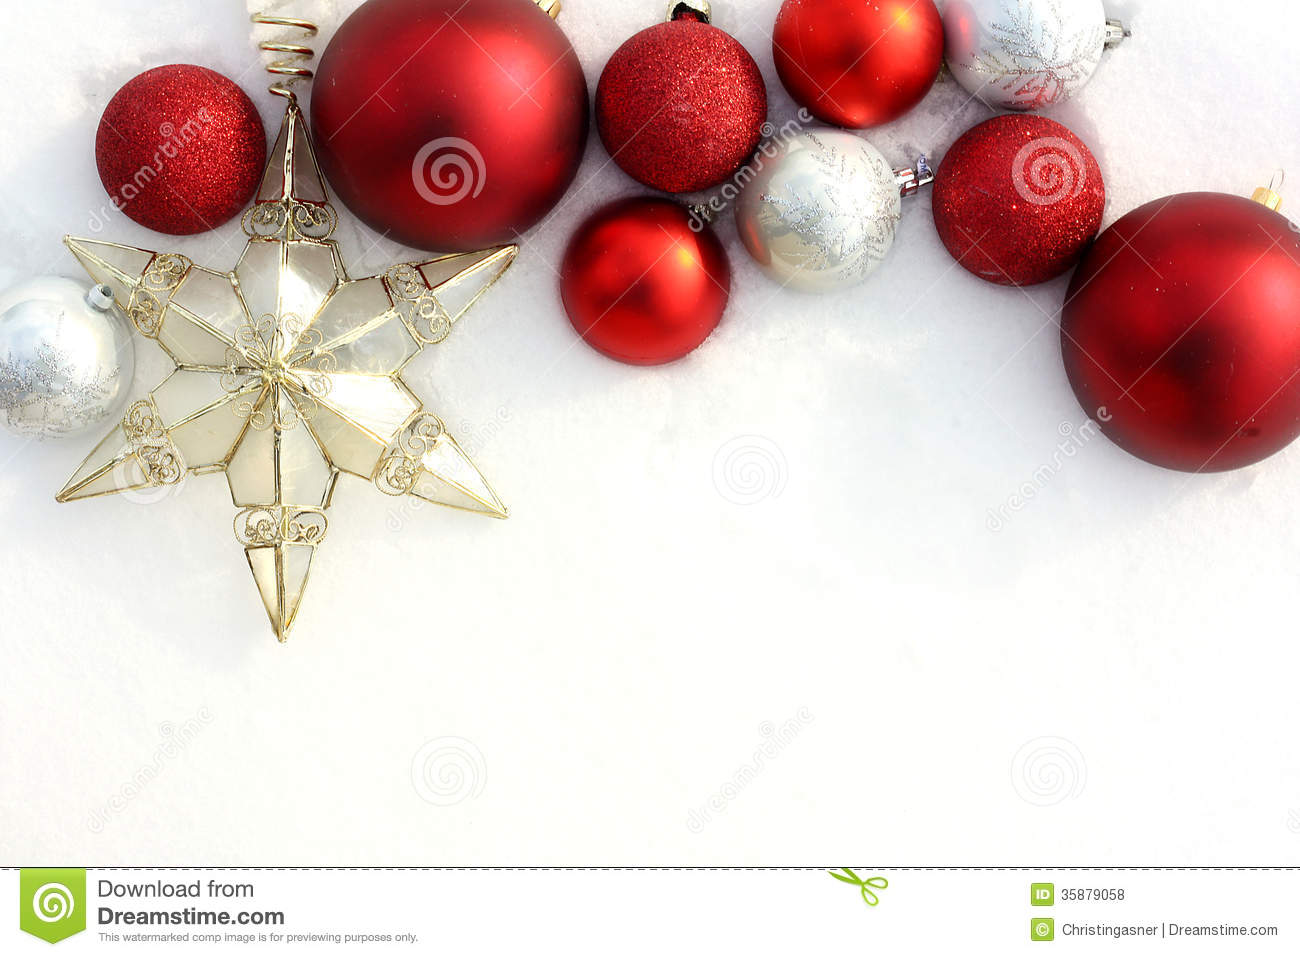 Christmas decorations borders - Red Christmas Bulbs And Star In White Snow Border Royalty Free Stock Photos